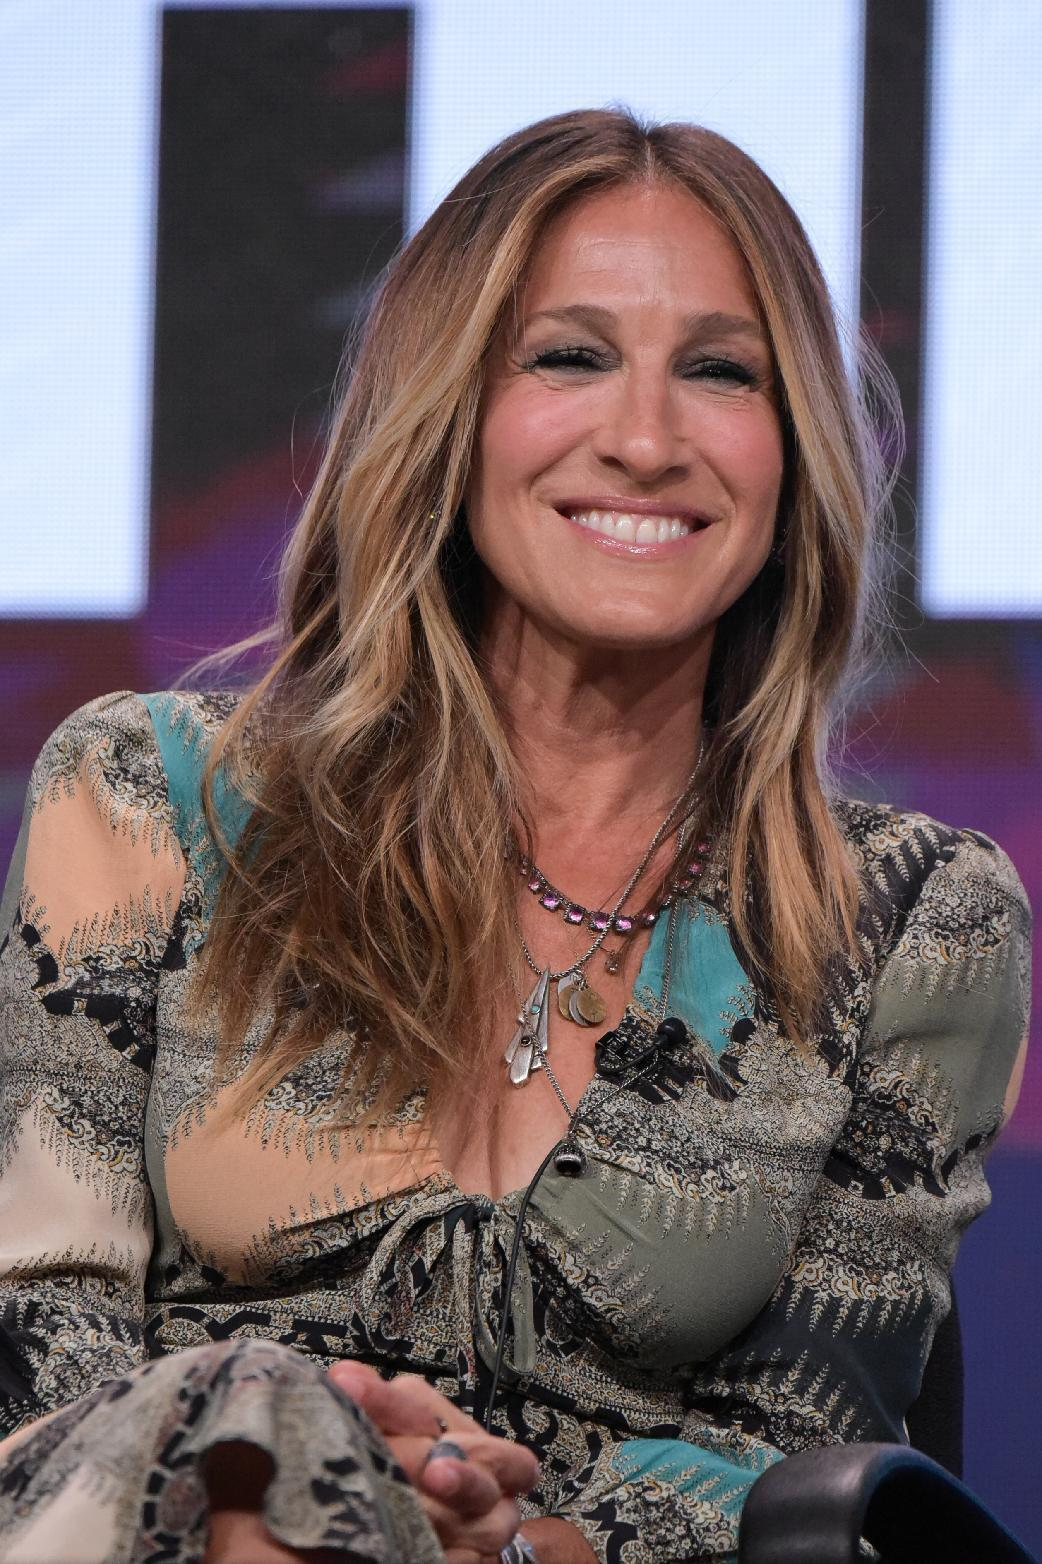 Sarah Jessica Parker goes thrift shop in new HBO comedy